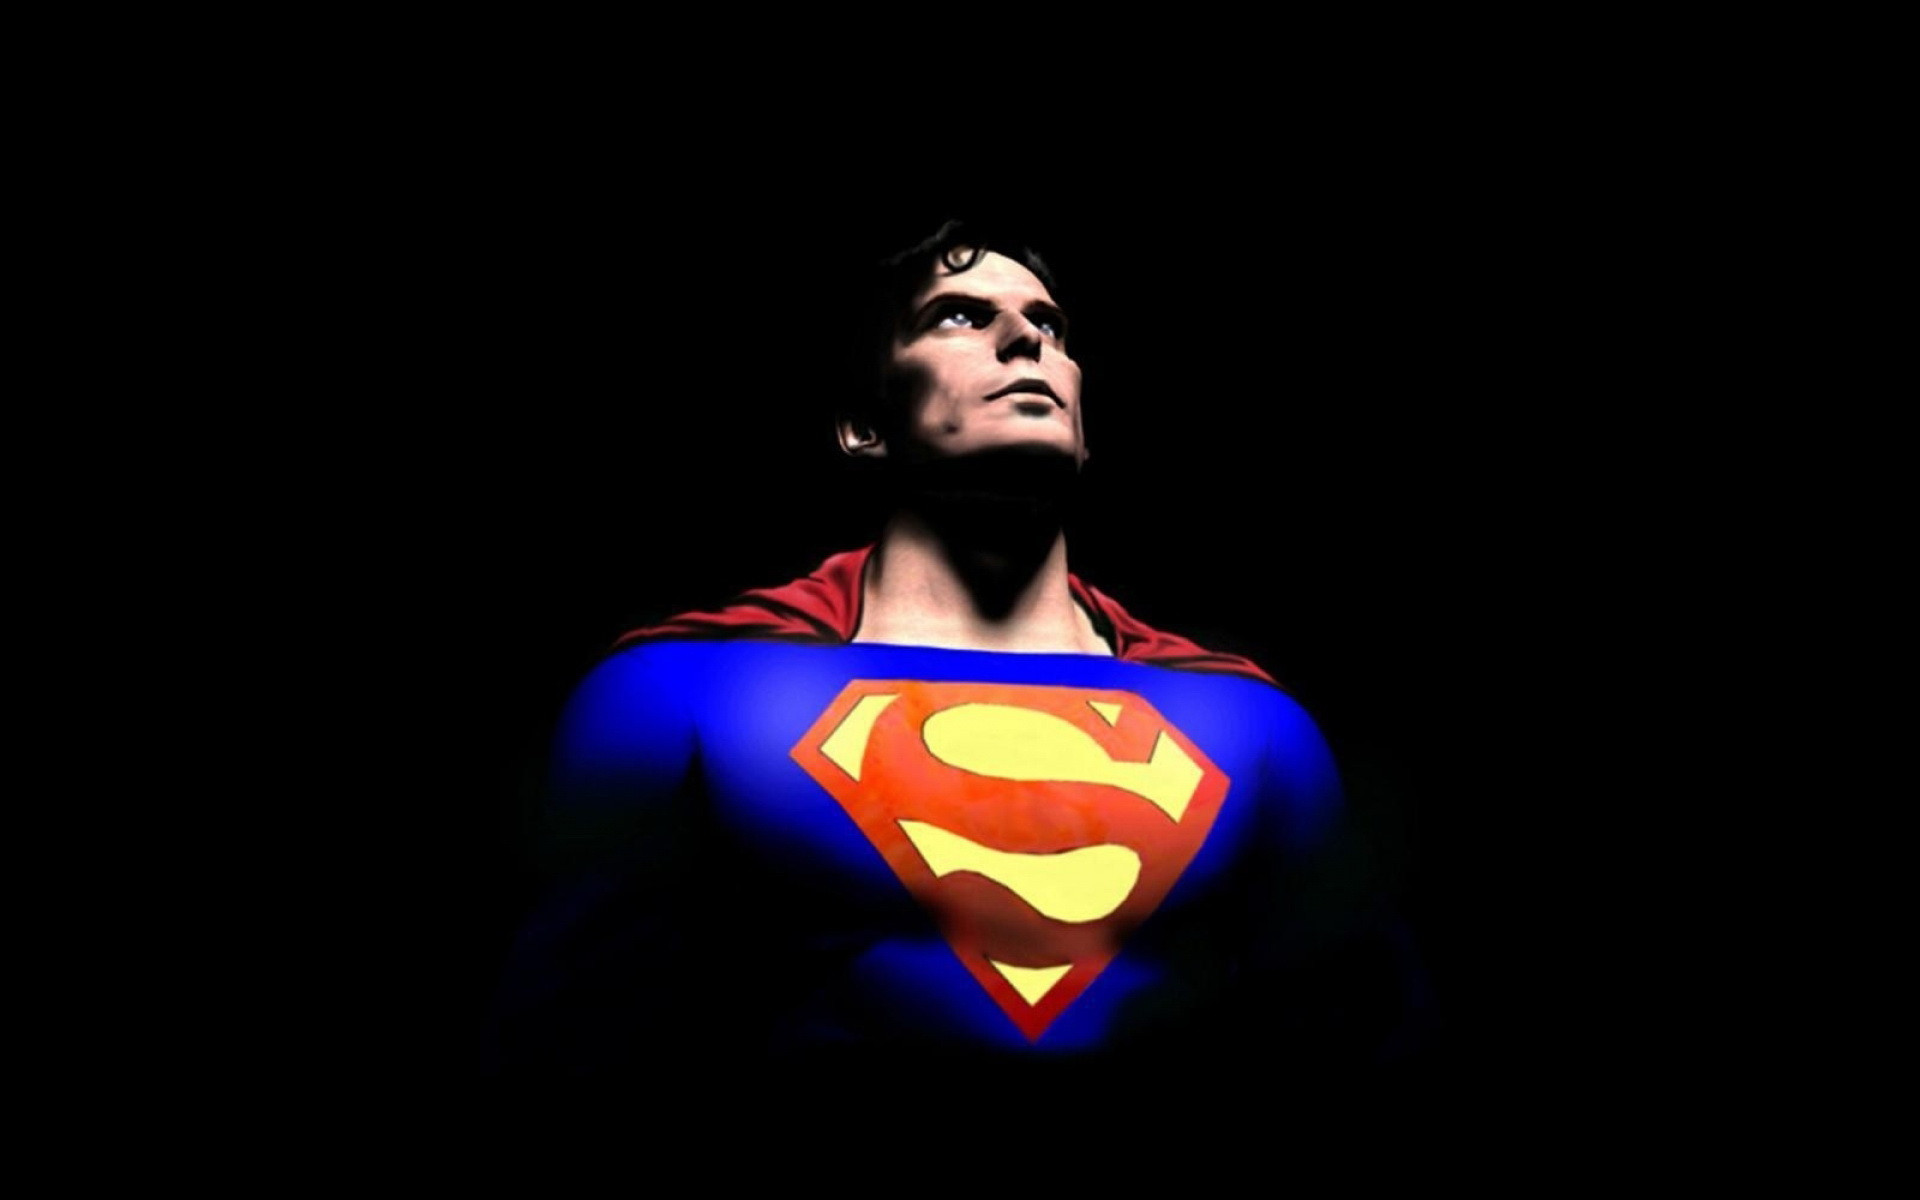 Superman Hd Wallpaper And Desktop Background Picture